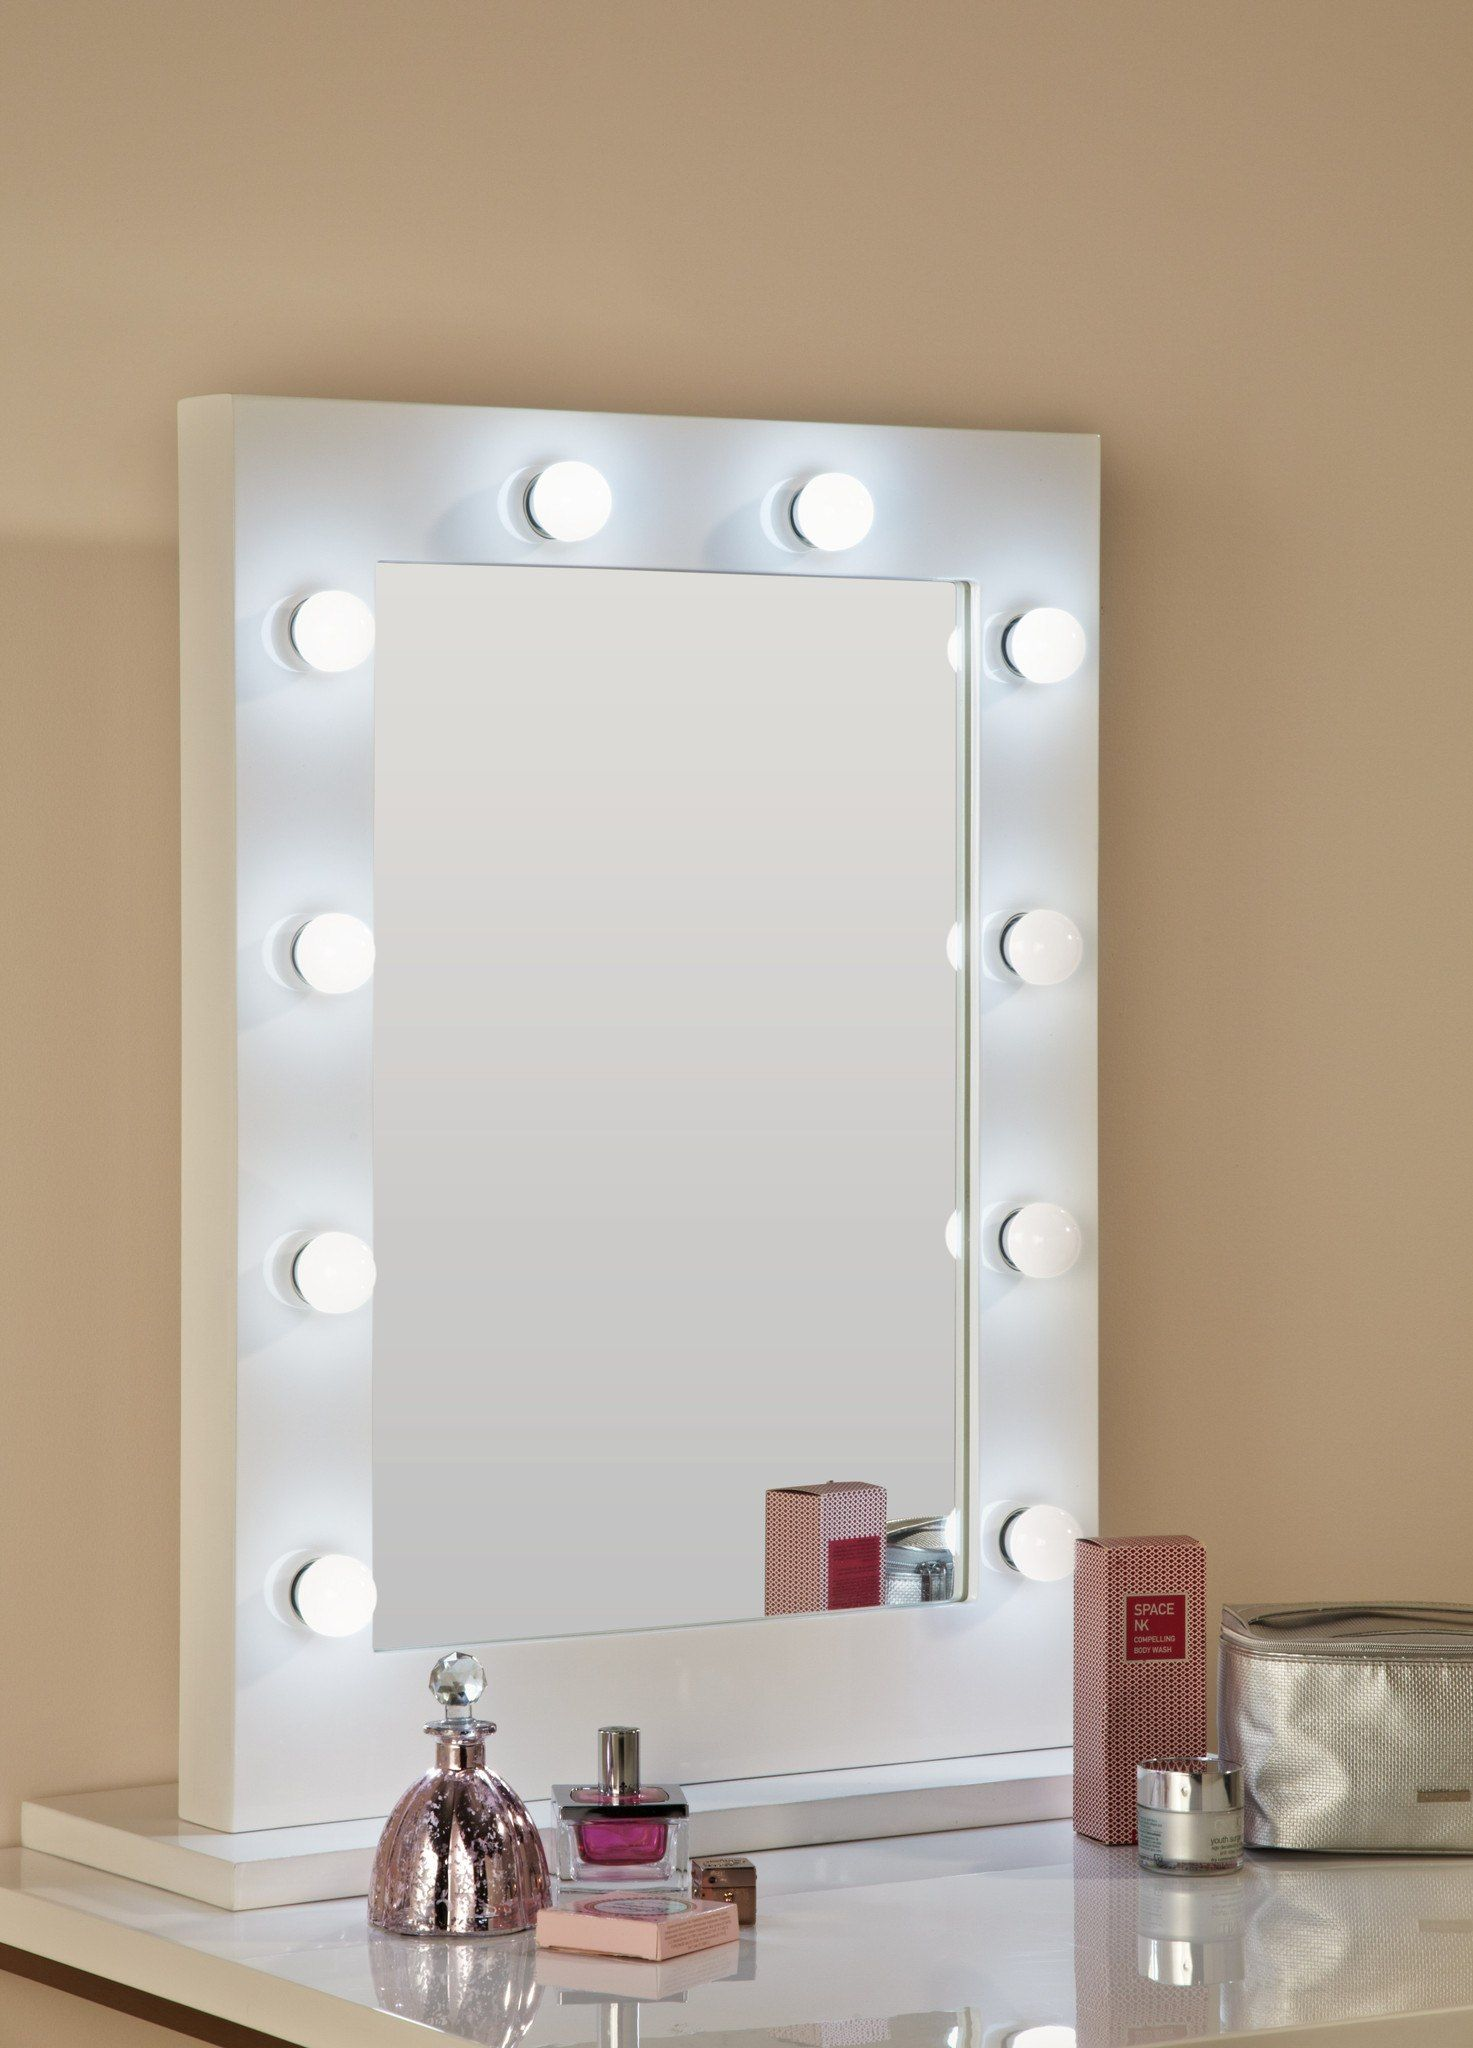 Delicieux Mirrors   Hollywood Mirror In White Gloss 80 X 60cm